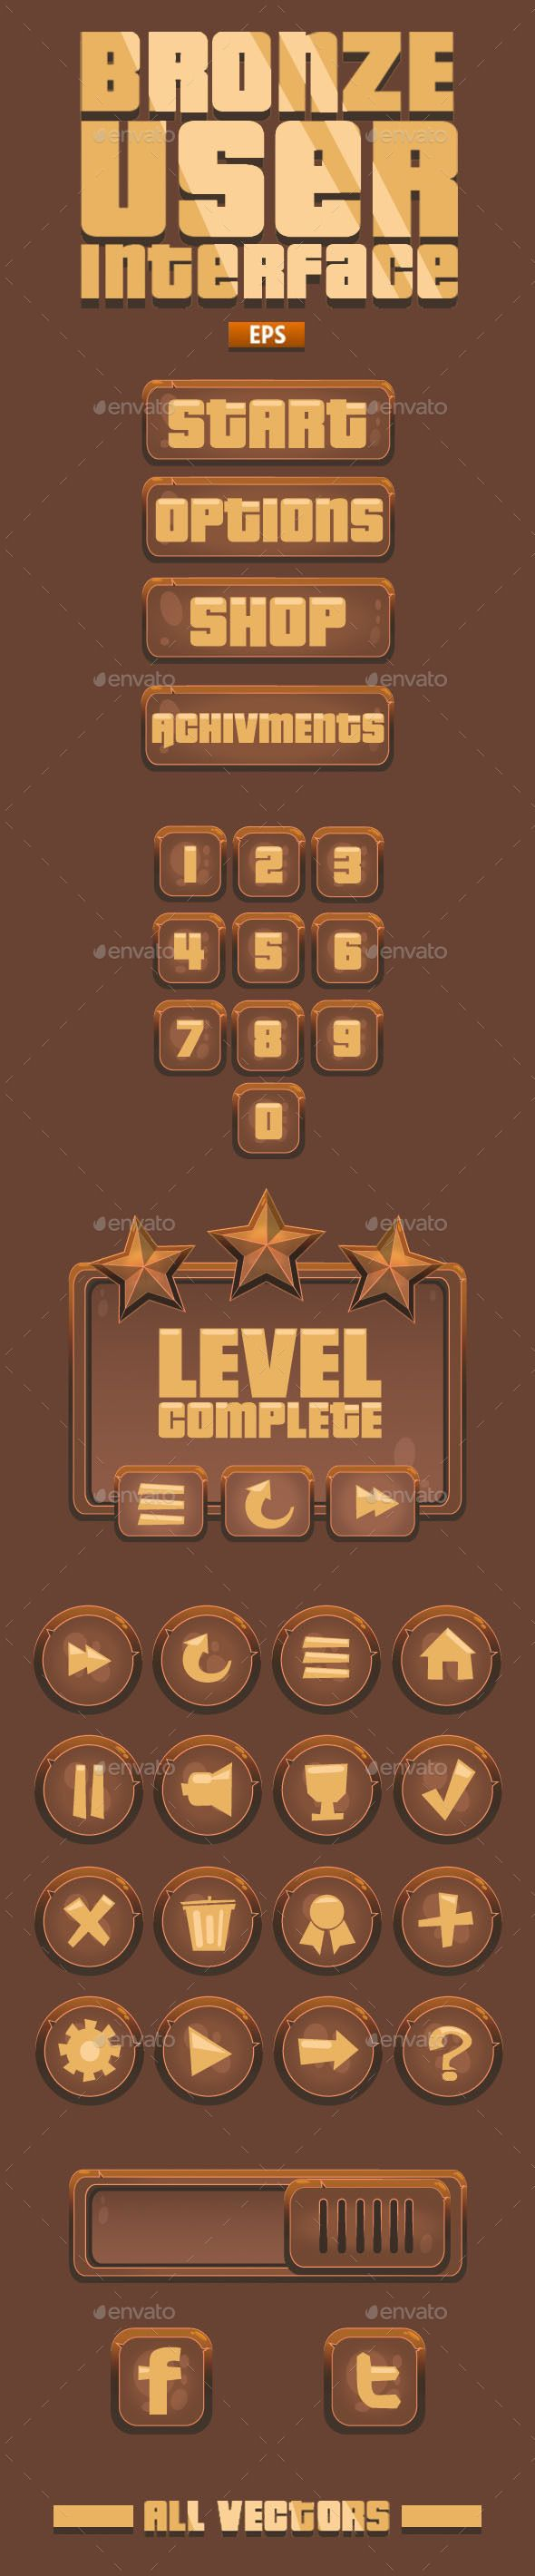 Bronze UI for videogames Exclusive Envato. Link: http://graphicriver.net/item/bronze-videogame-ui-41-items/11403405